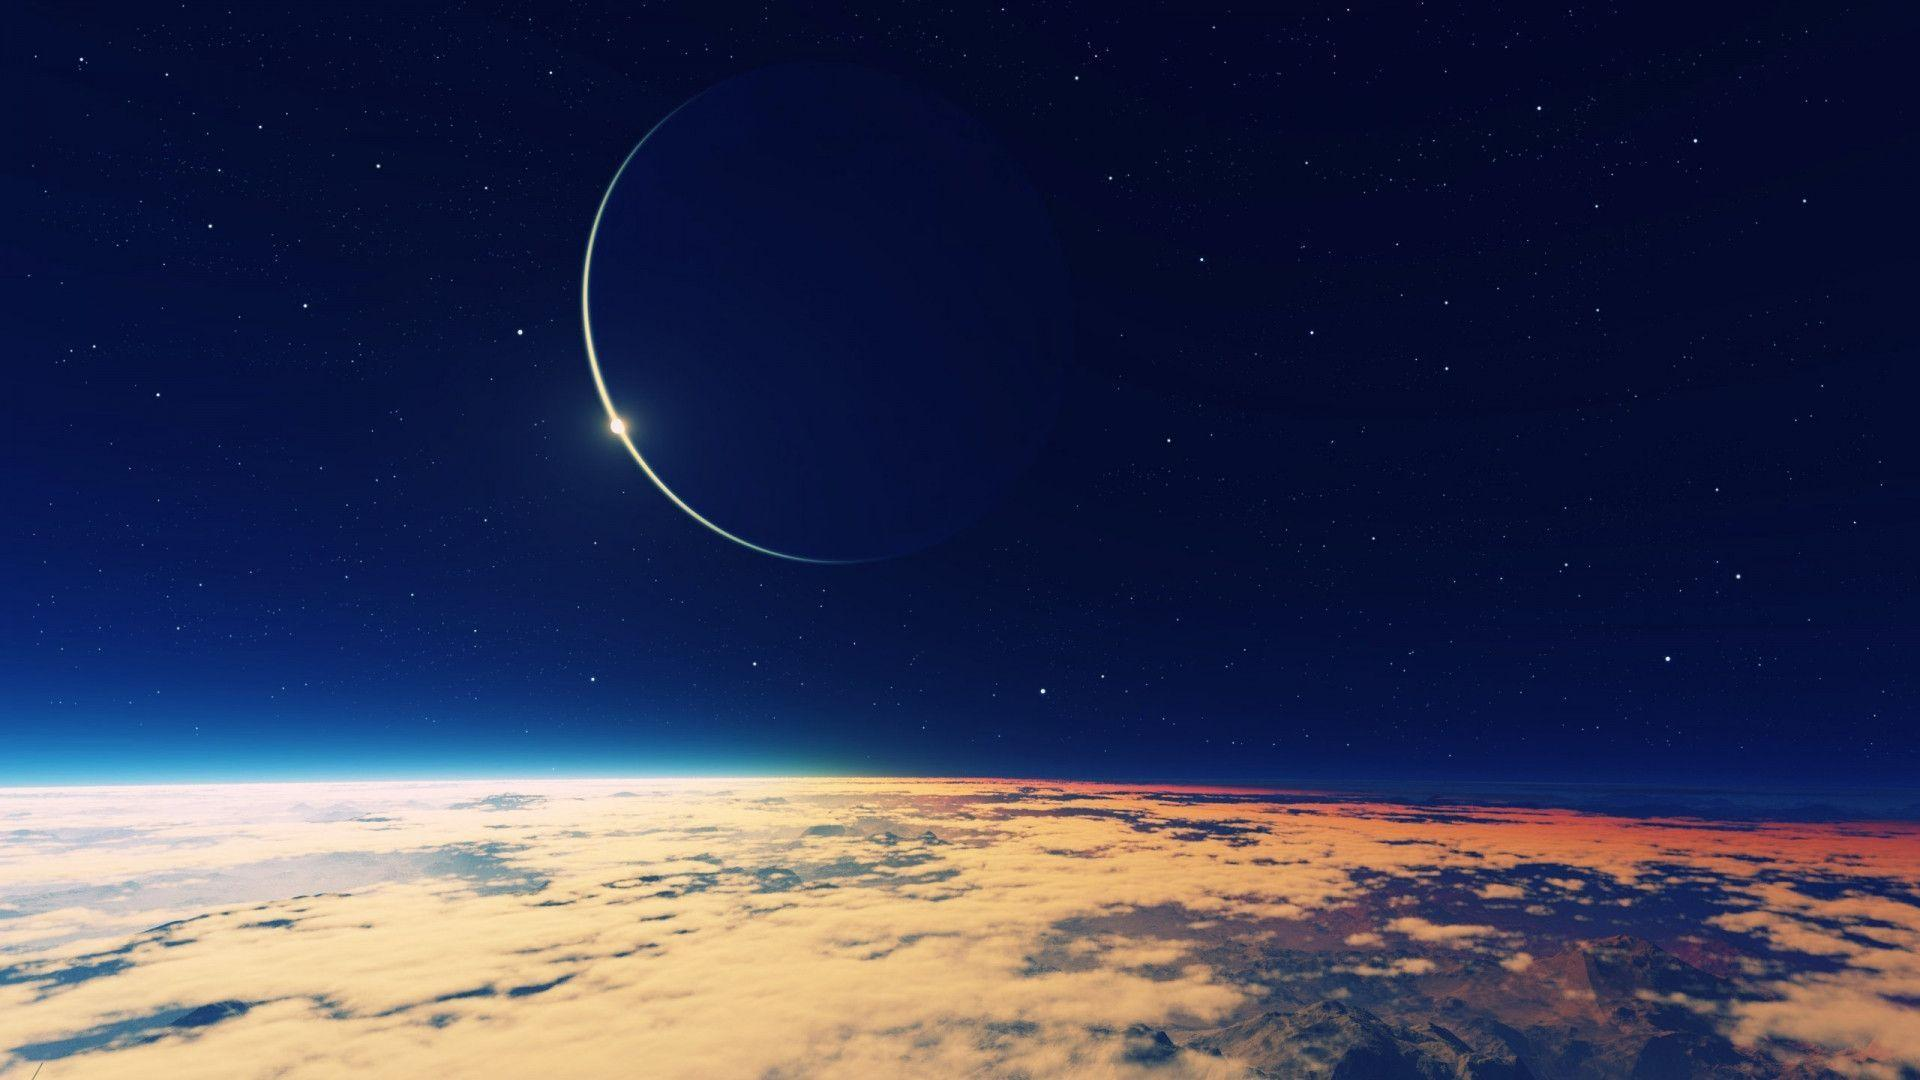 Pics Download Hd Images 1080p: HD Space Wallpapers 1080p